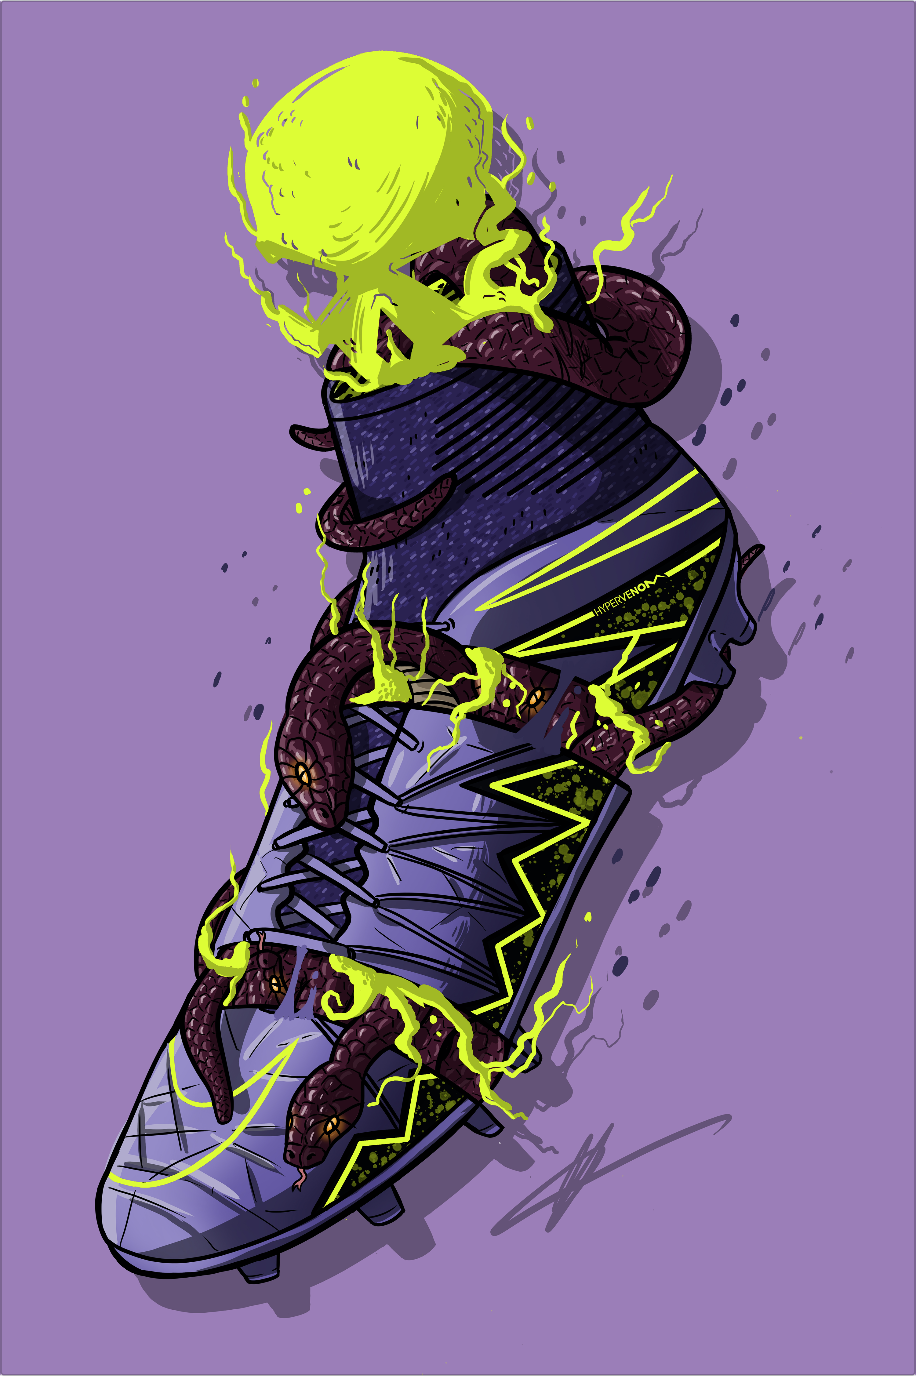 Football Art - Nike Hypervenom Phantom 2